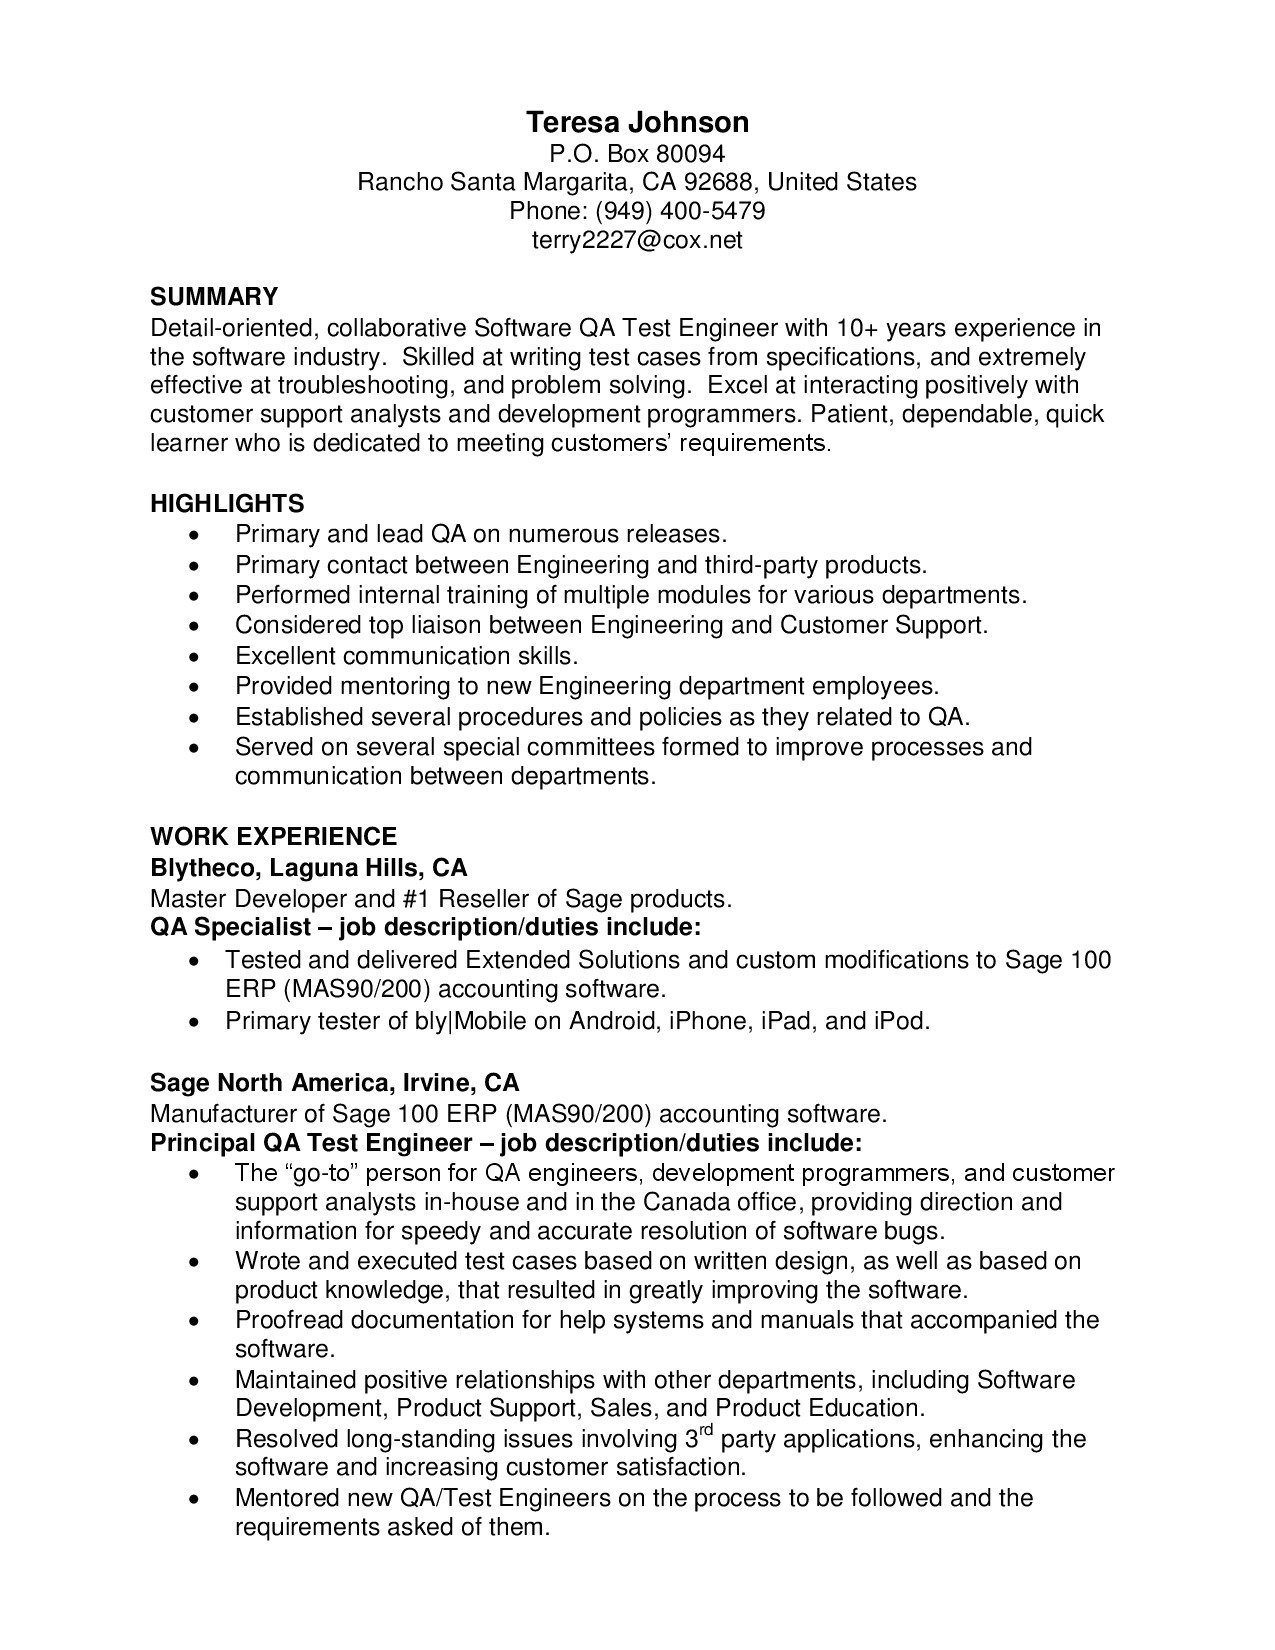 Sample Resume for 2 Years Experience In software Testing software Testing Resume Samples for Experience Krida Info